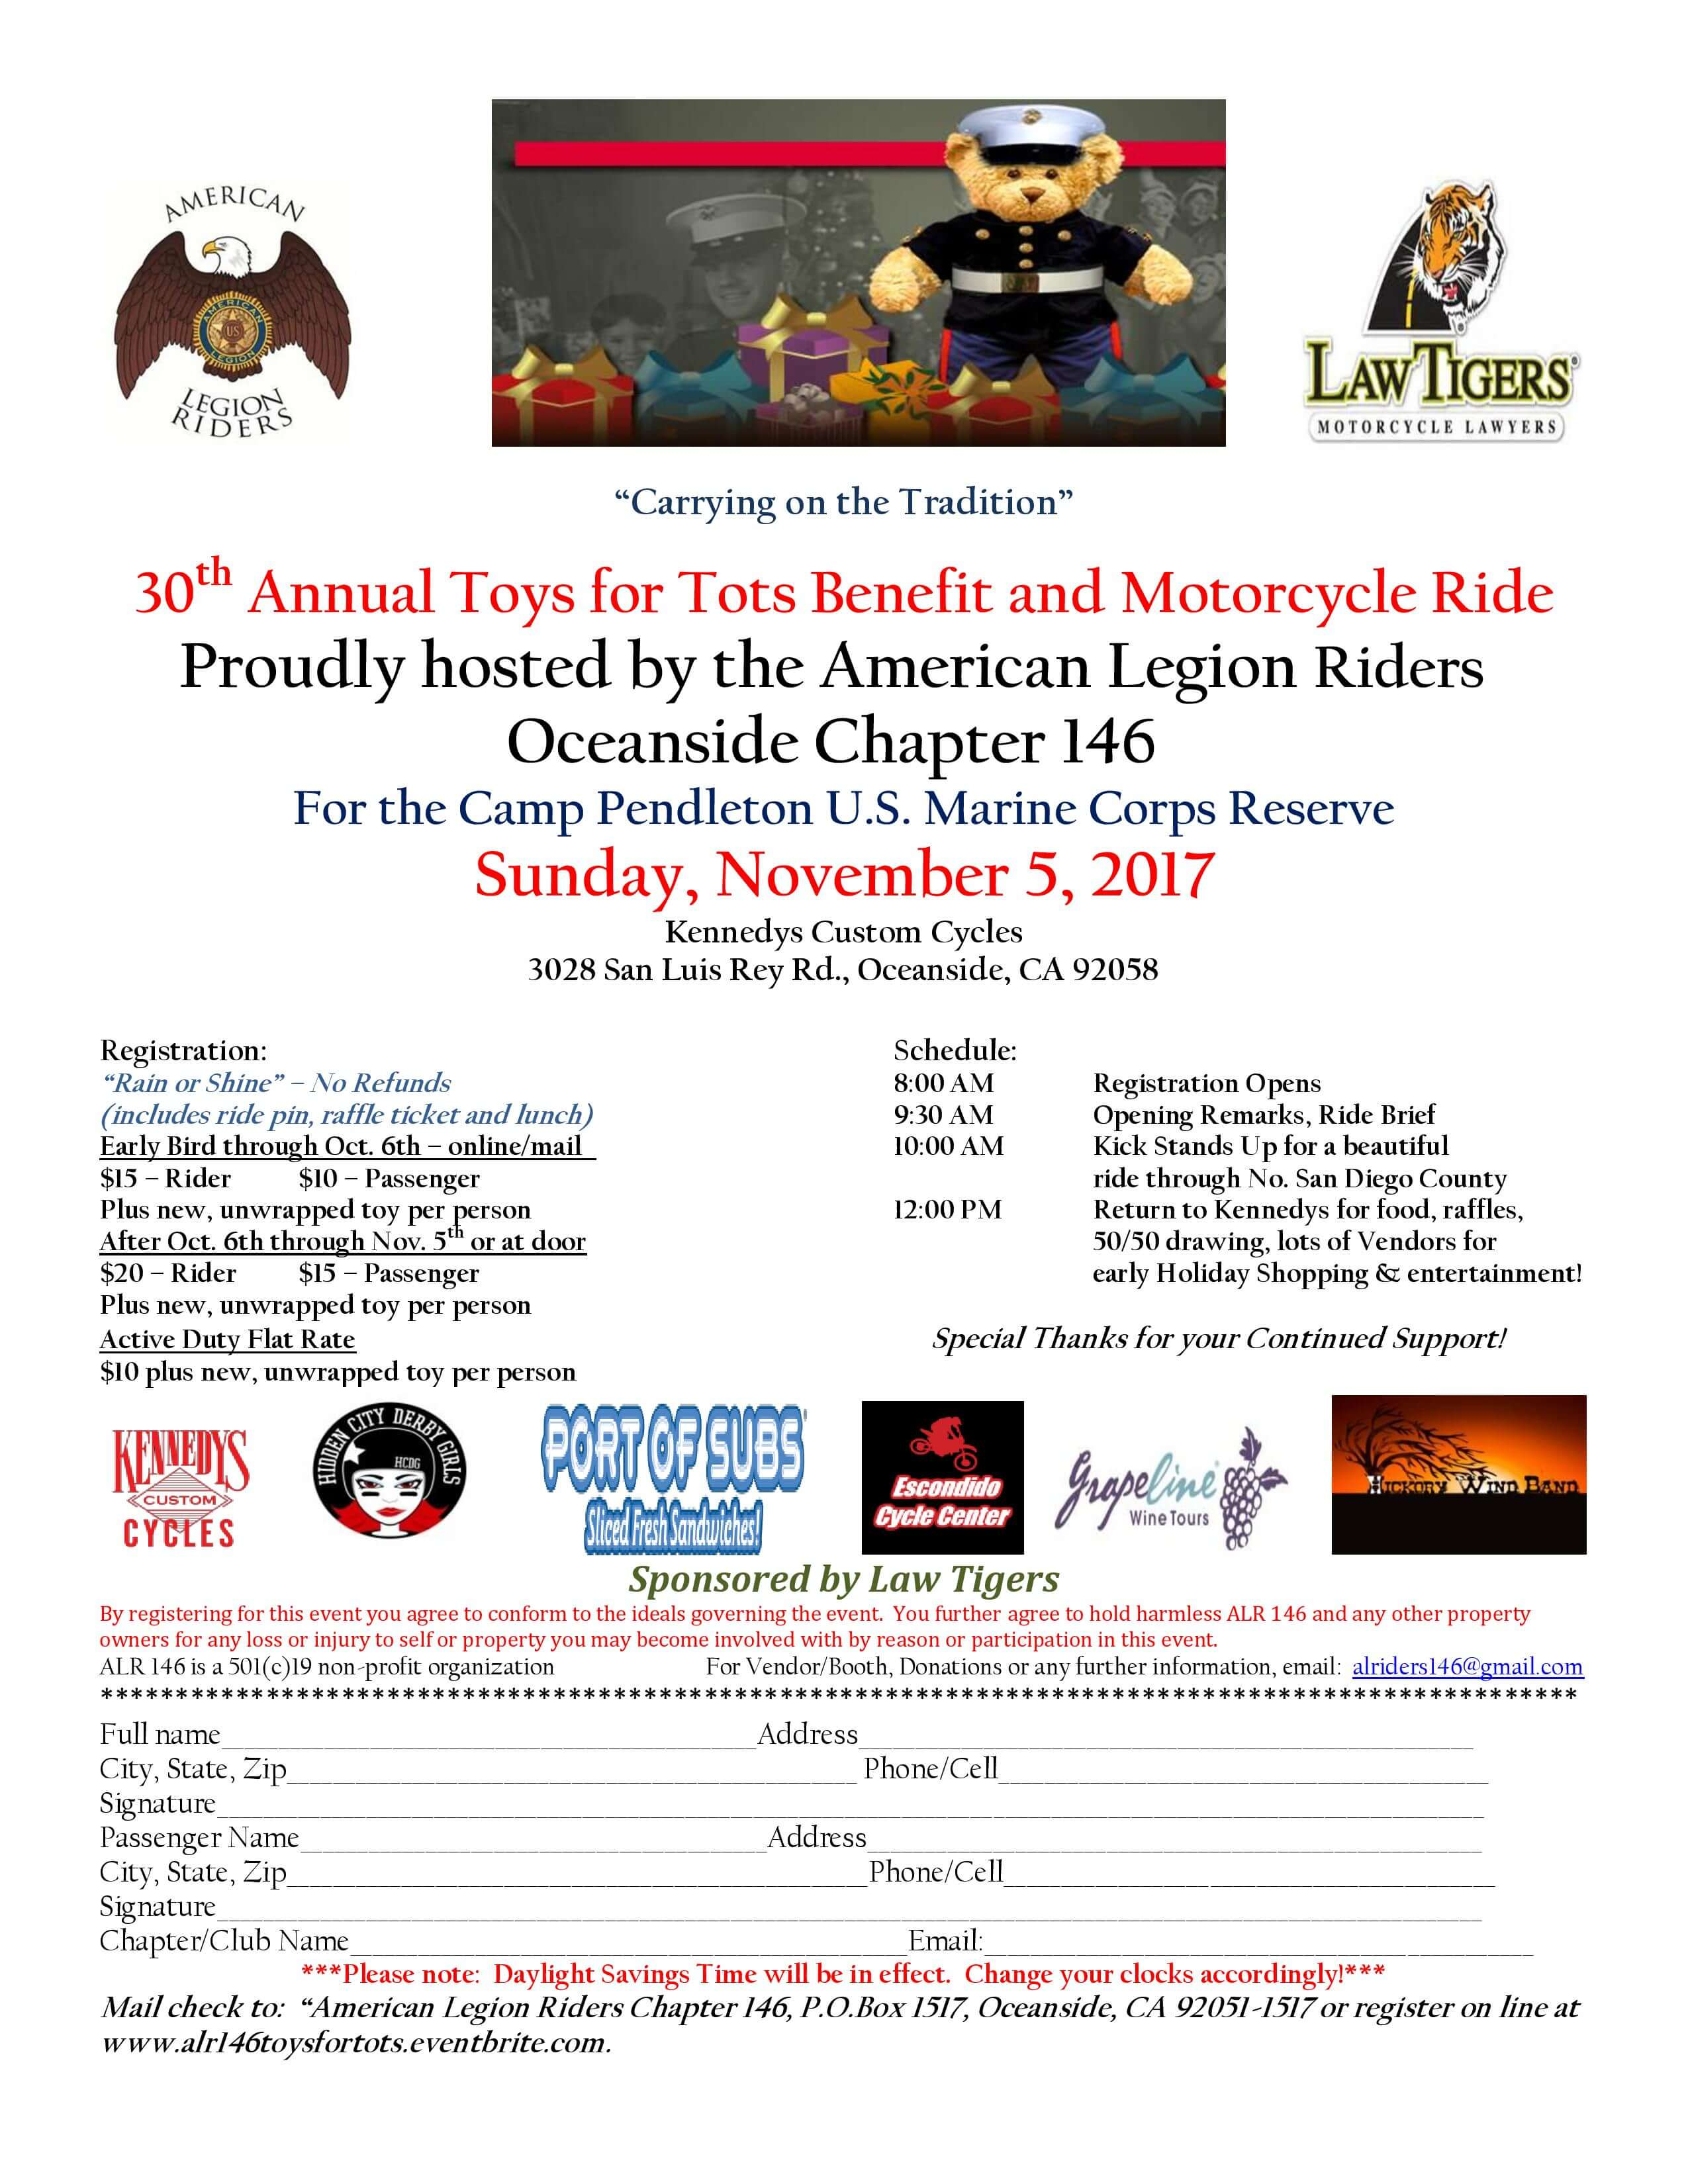 30th Annual Toys for Tots Benefit and Motorcycle Ride